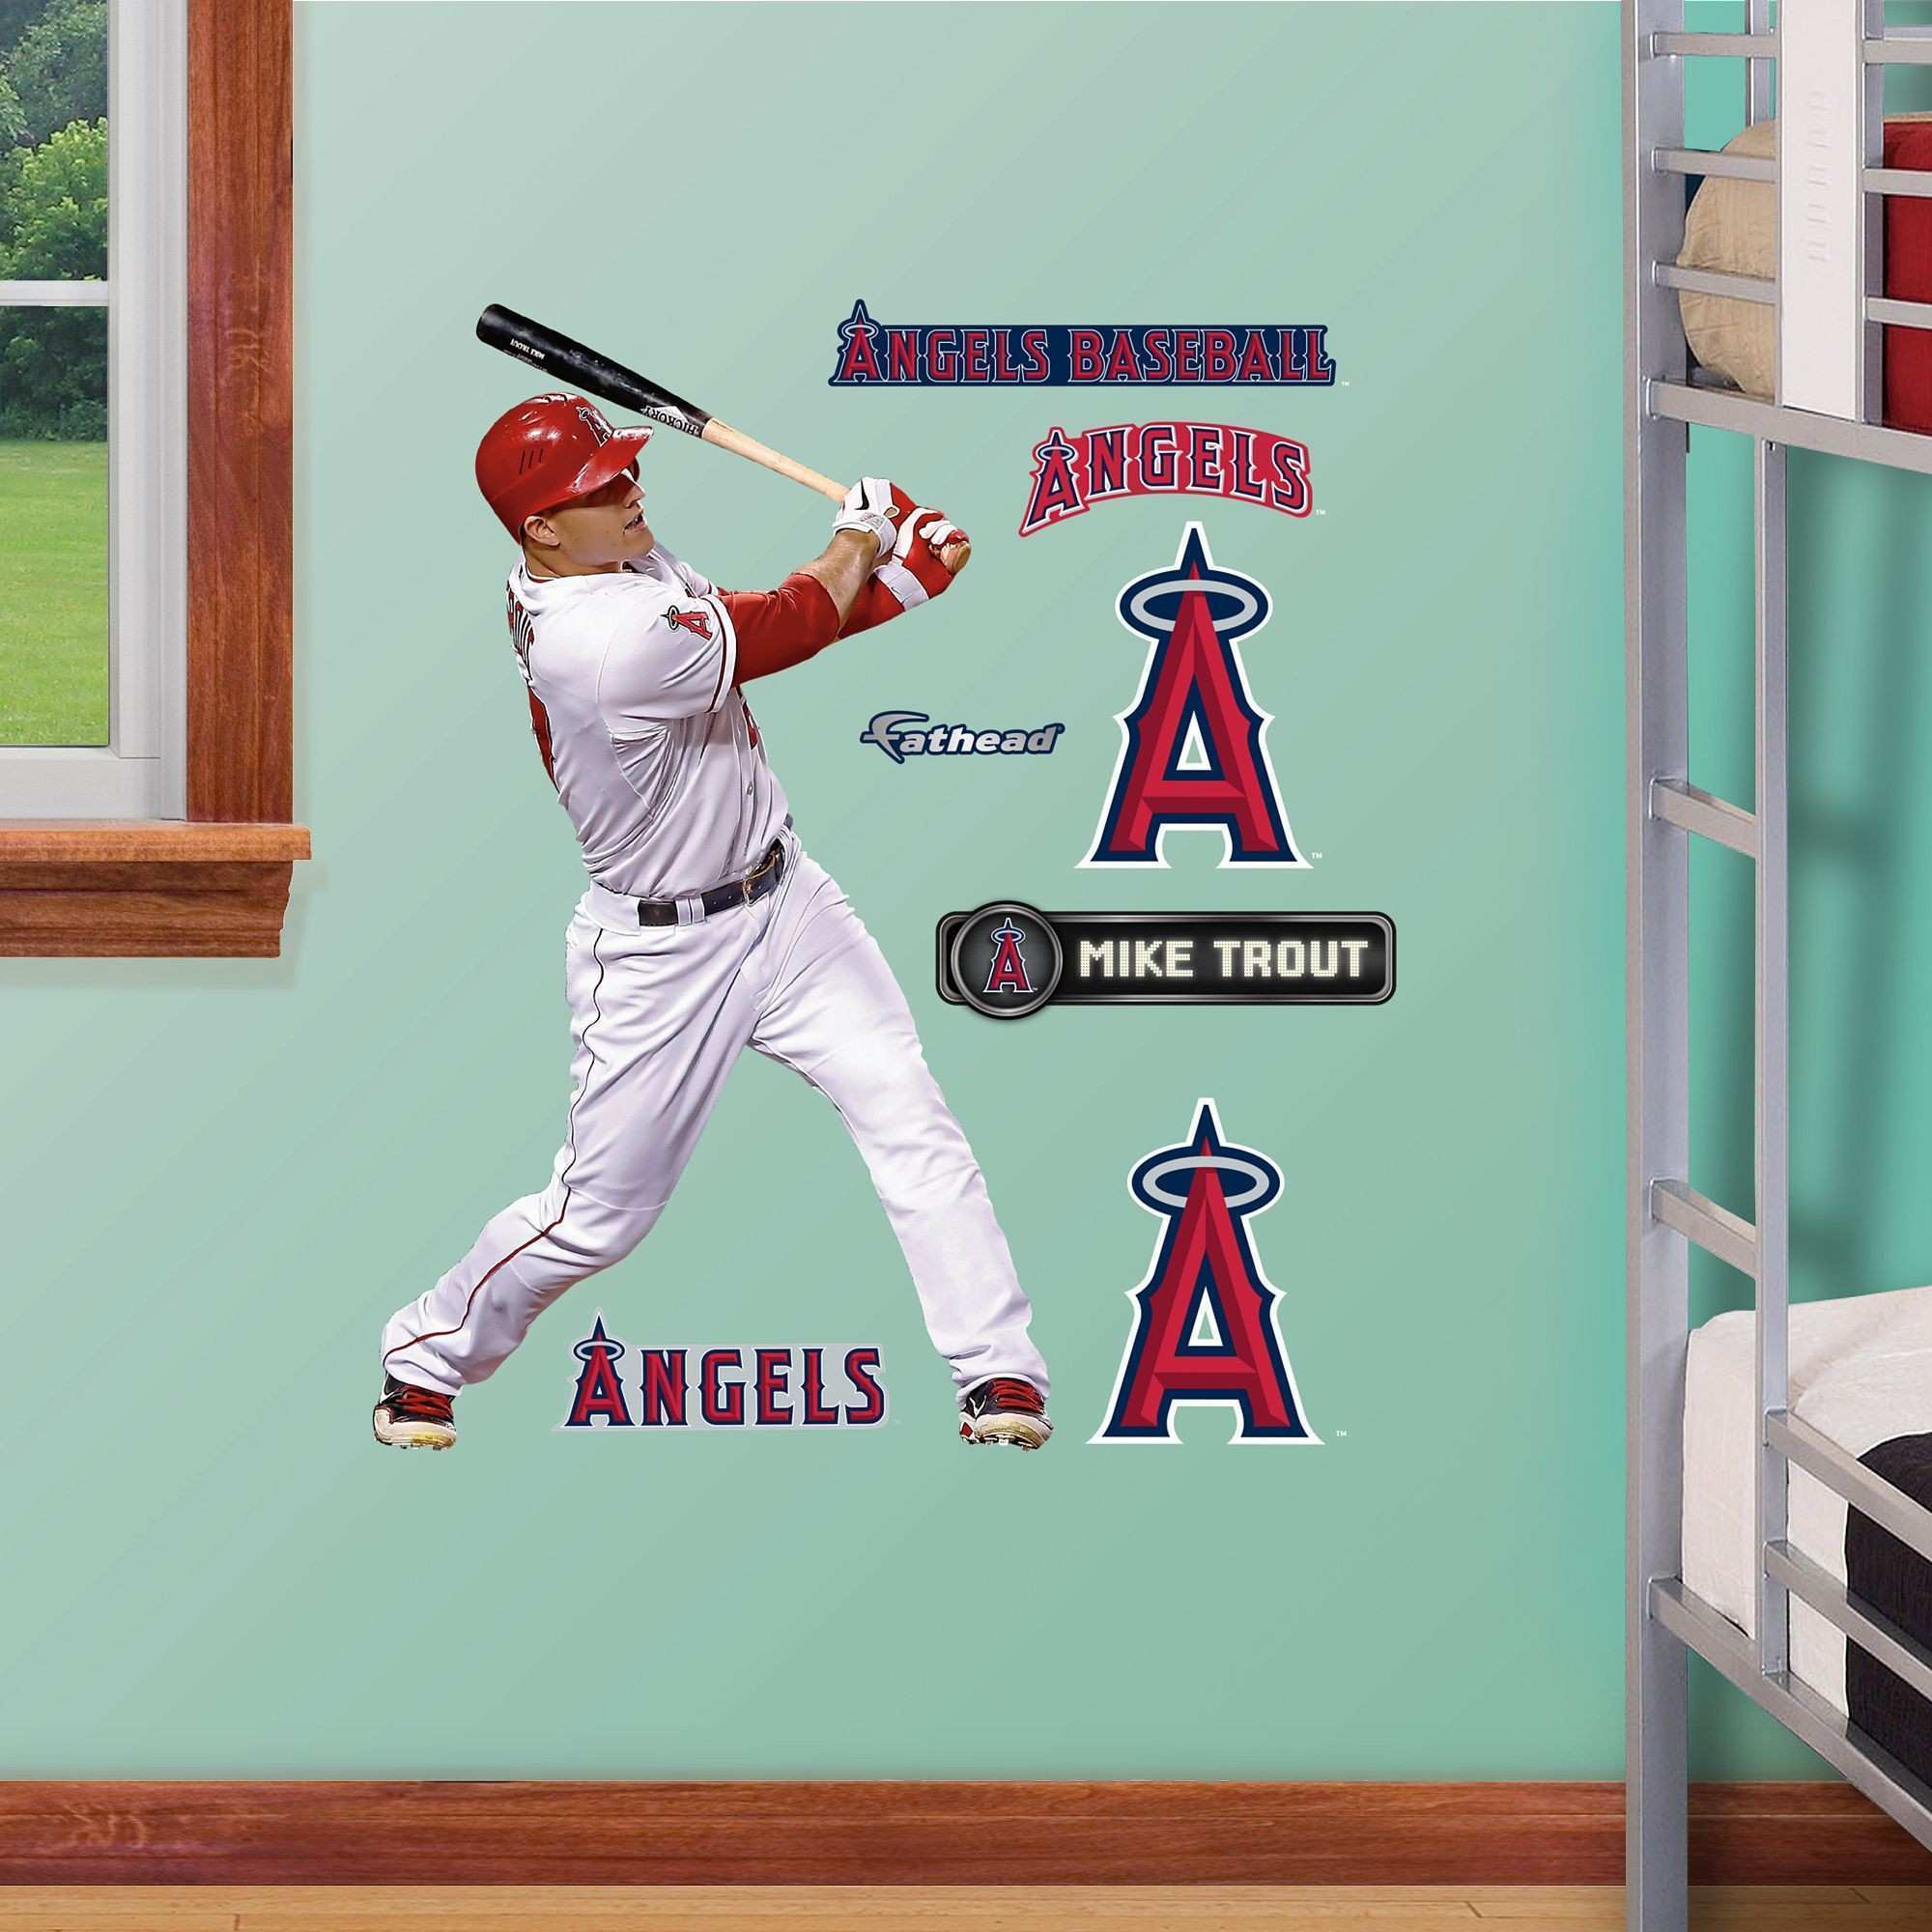 Fathead Jr Mike Trout Wall Decals Products Pinterest